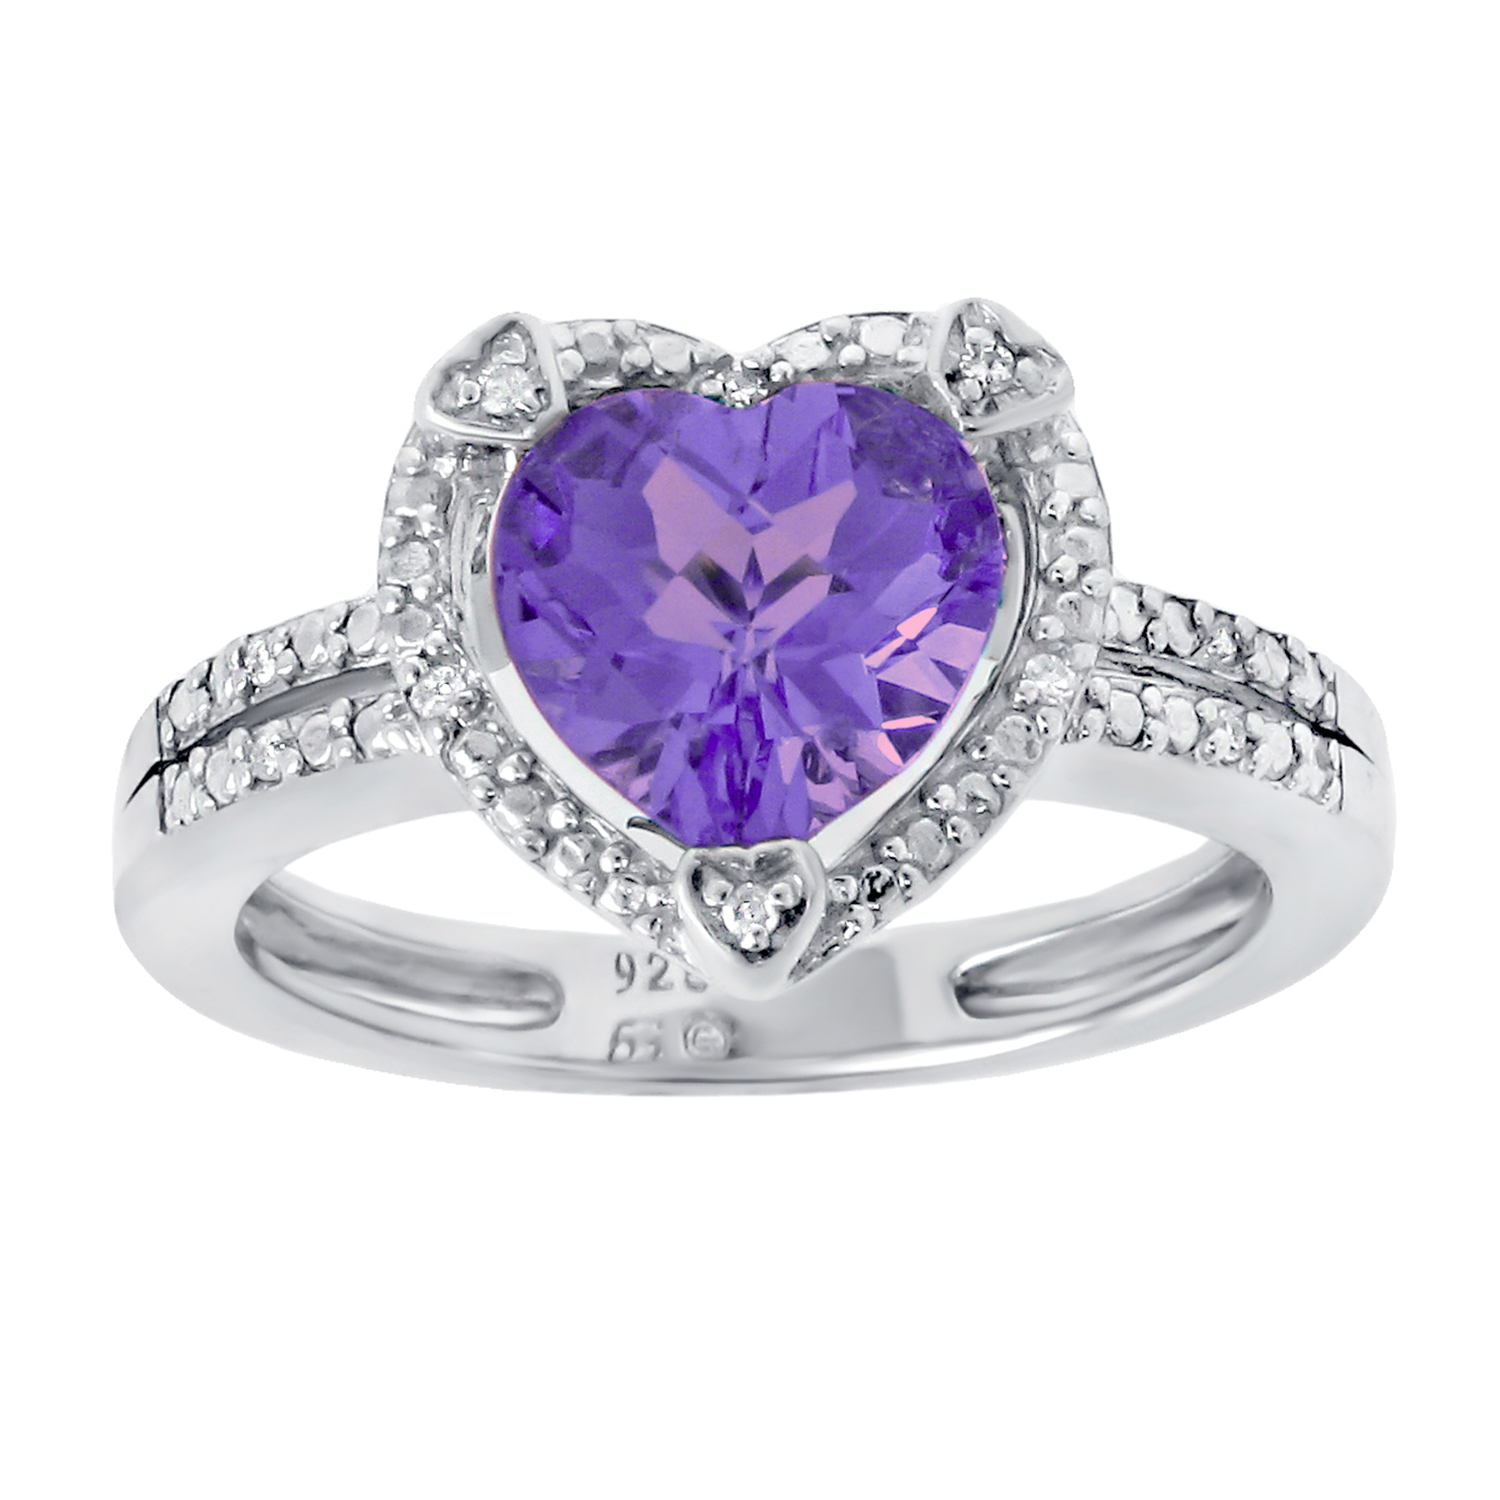 1.50 Ct Heart Natural Purple Amethyst Diamond 925 Sterling Silver Ring